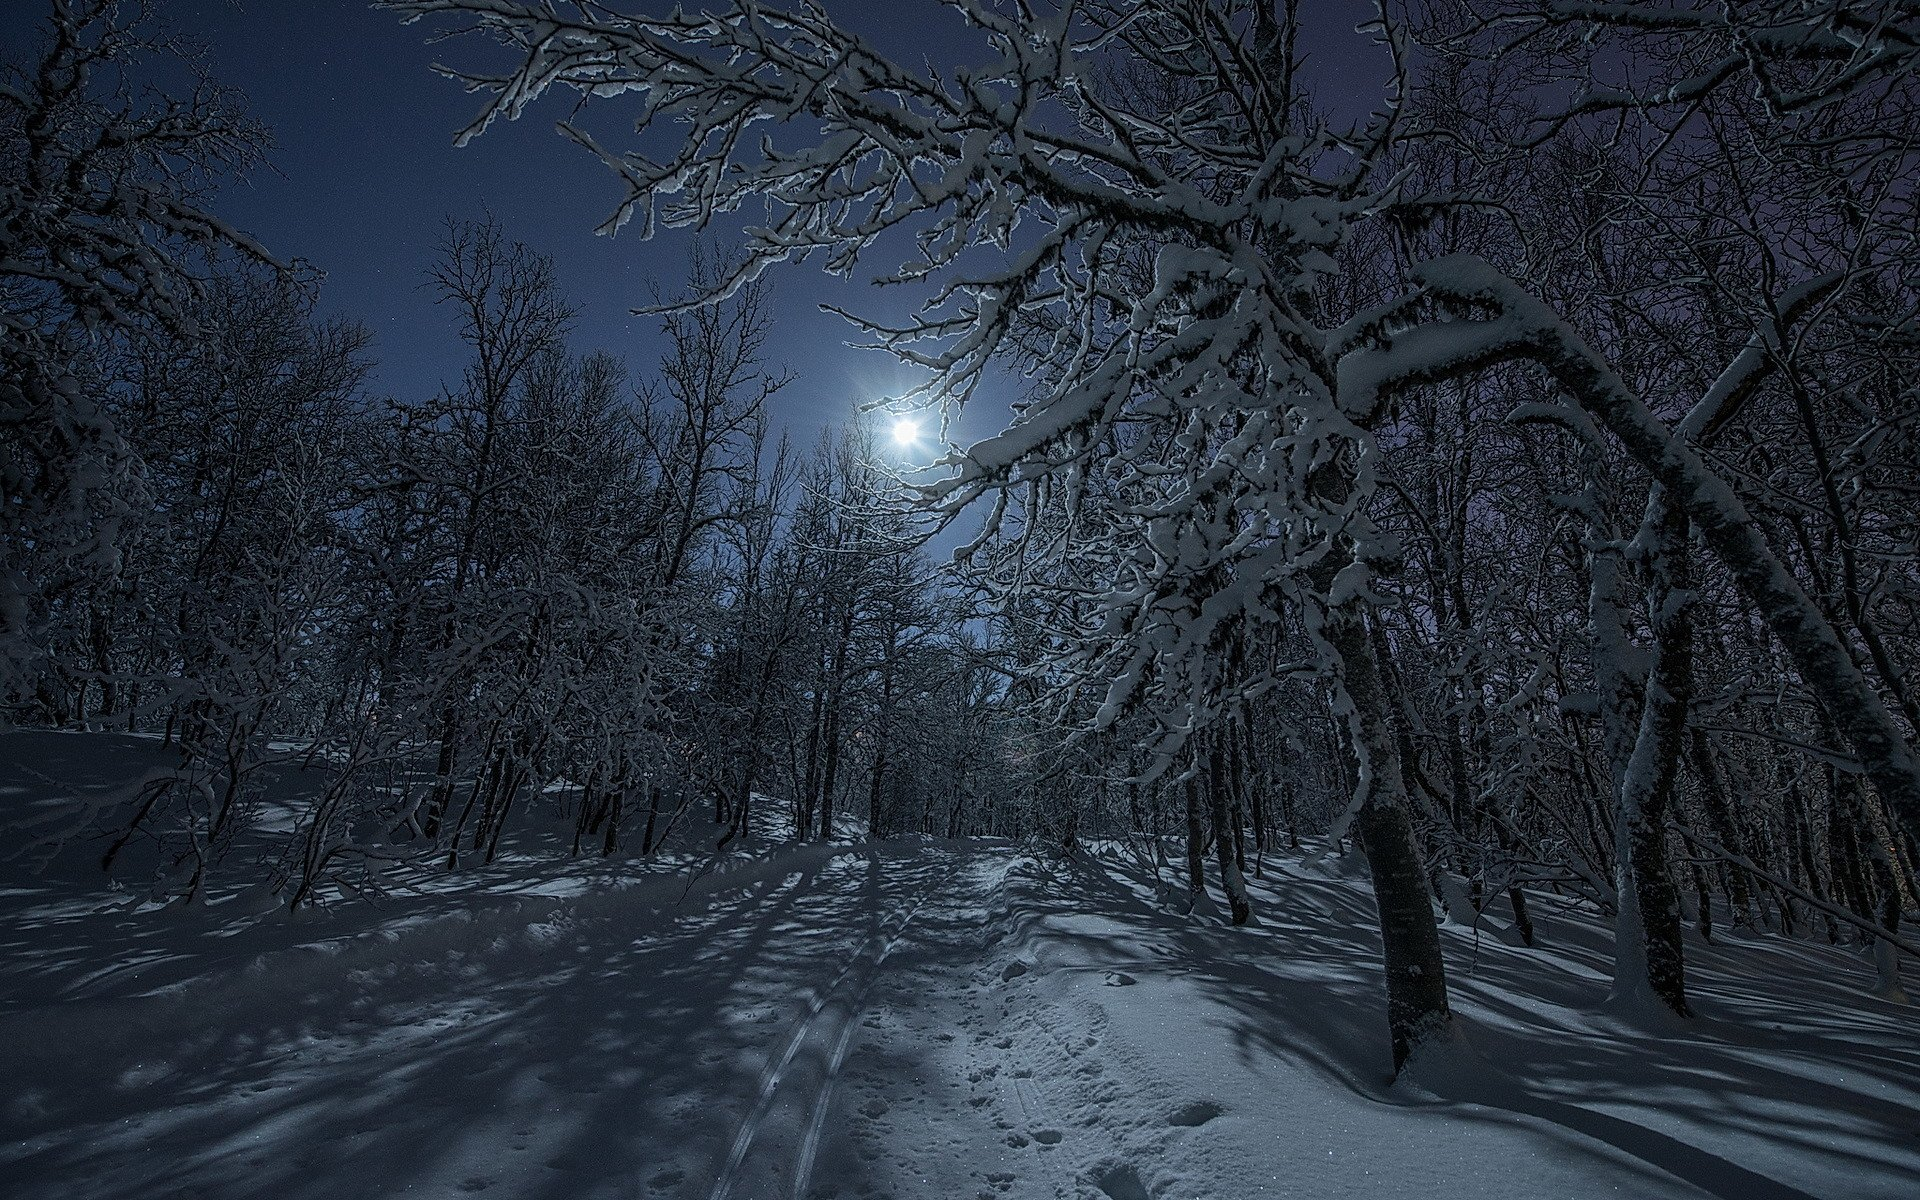 Night In Winter Forest Hd Wallpaper Background Image 1920x1200